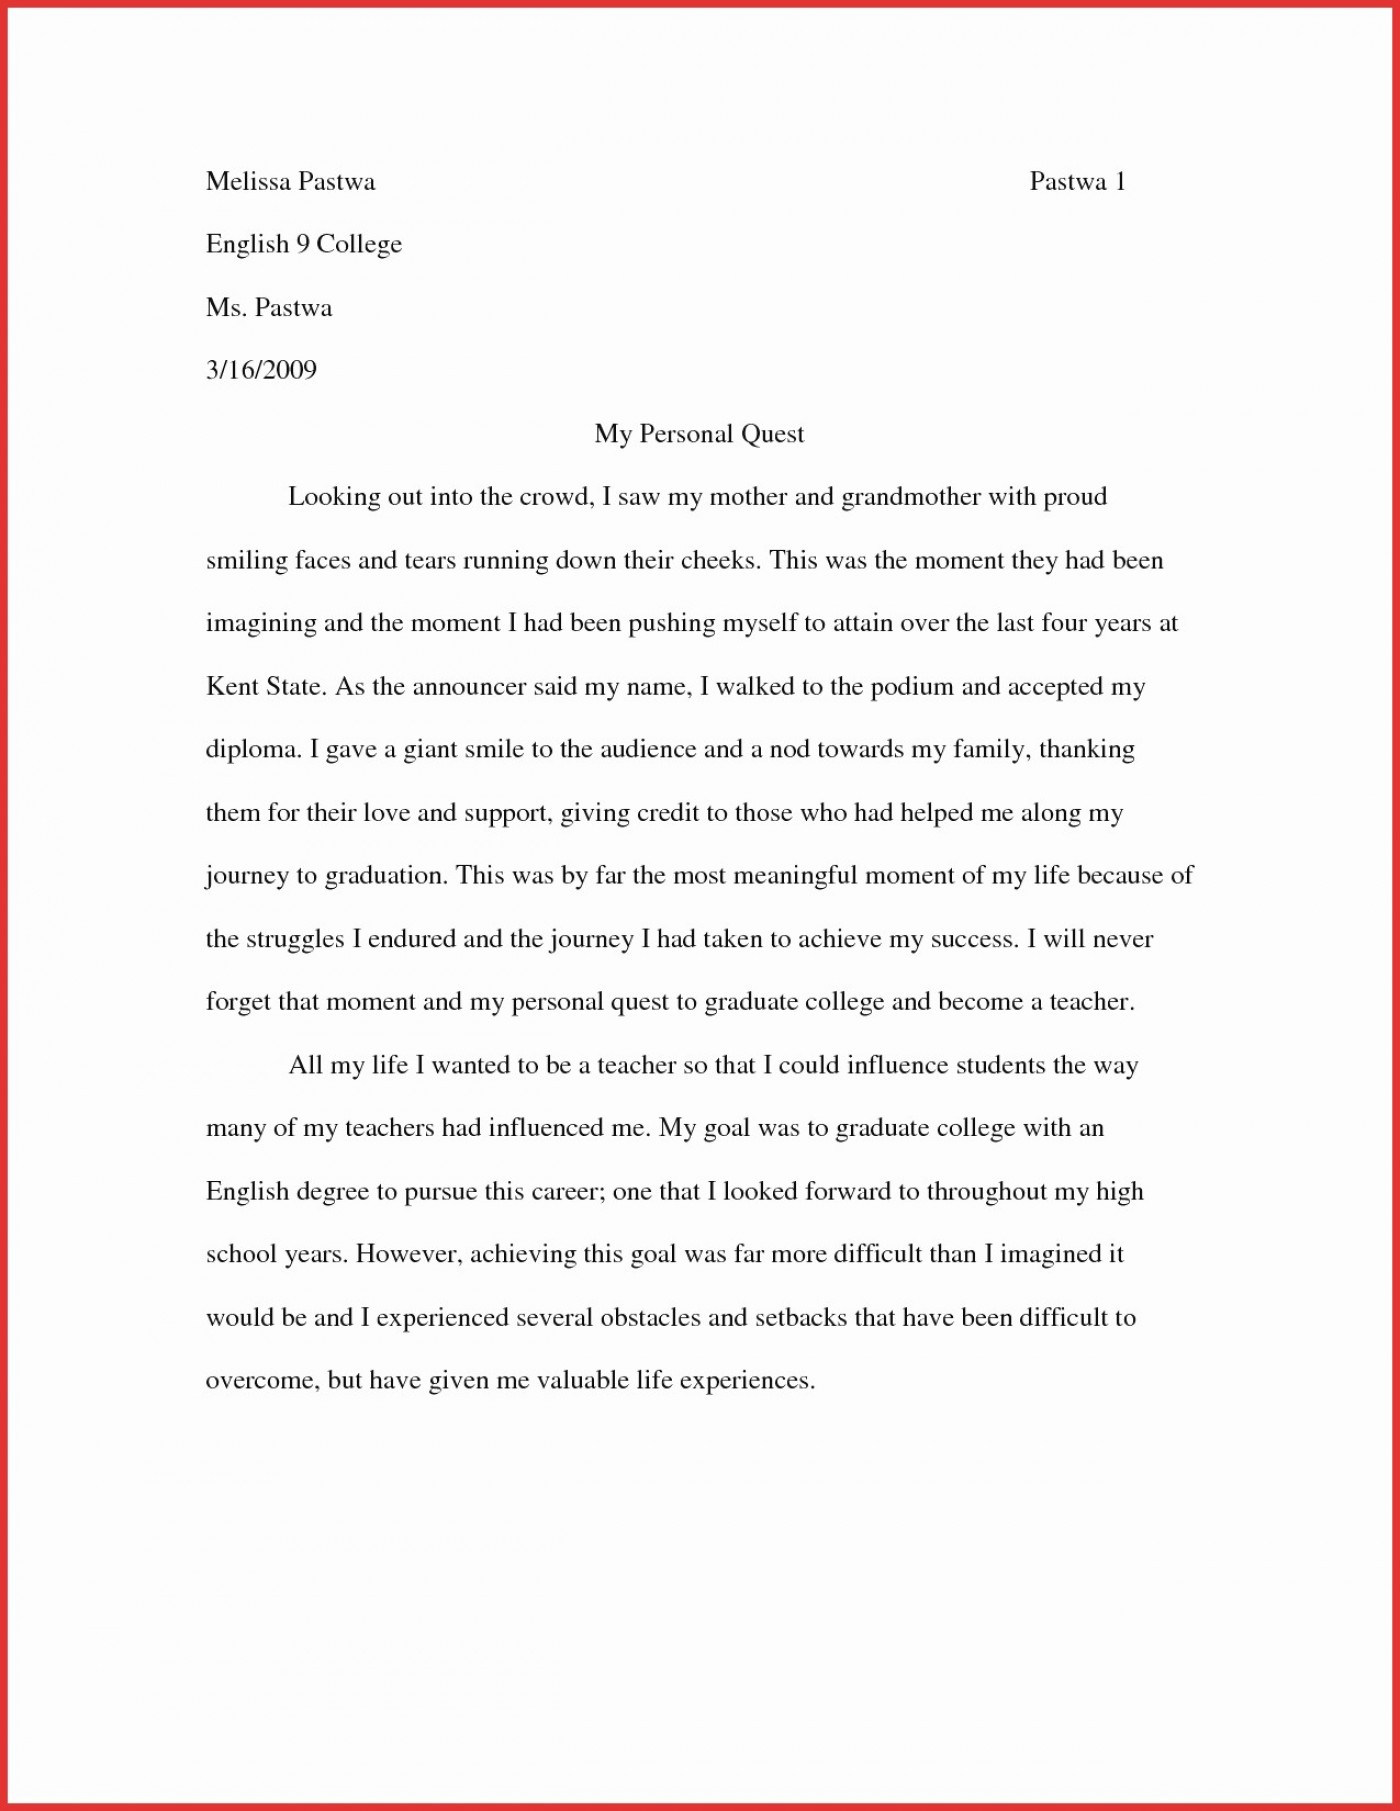 personal essay thesis statements awesome new tip narrative smart    personal essay thesis statements awesome new tip narrative smart of  college beautiful statement example